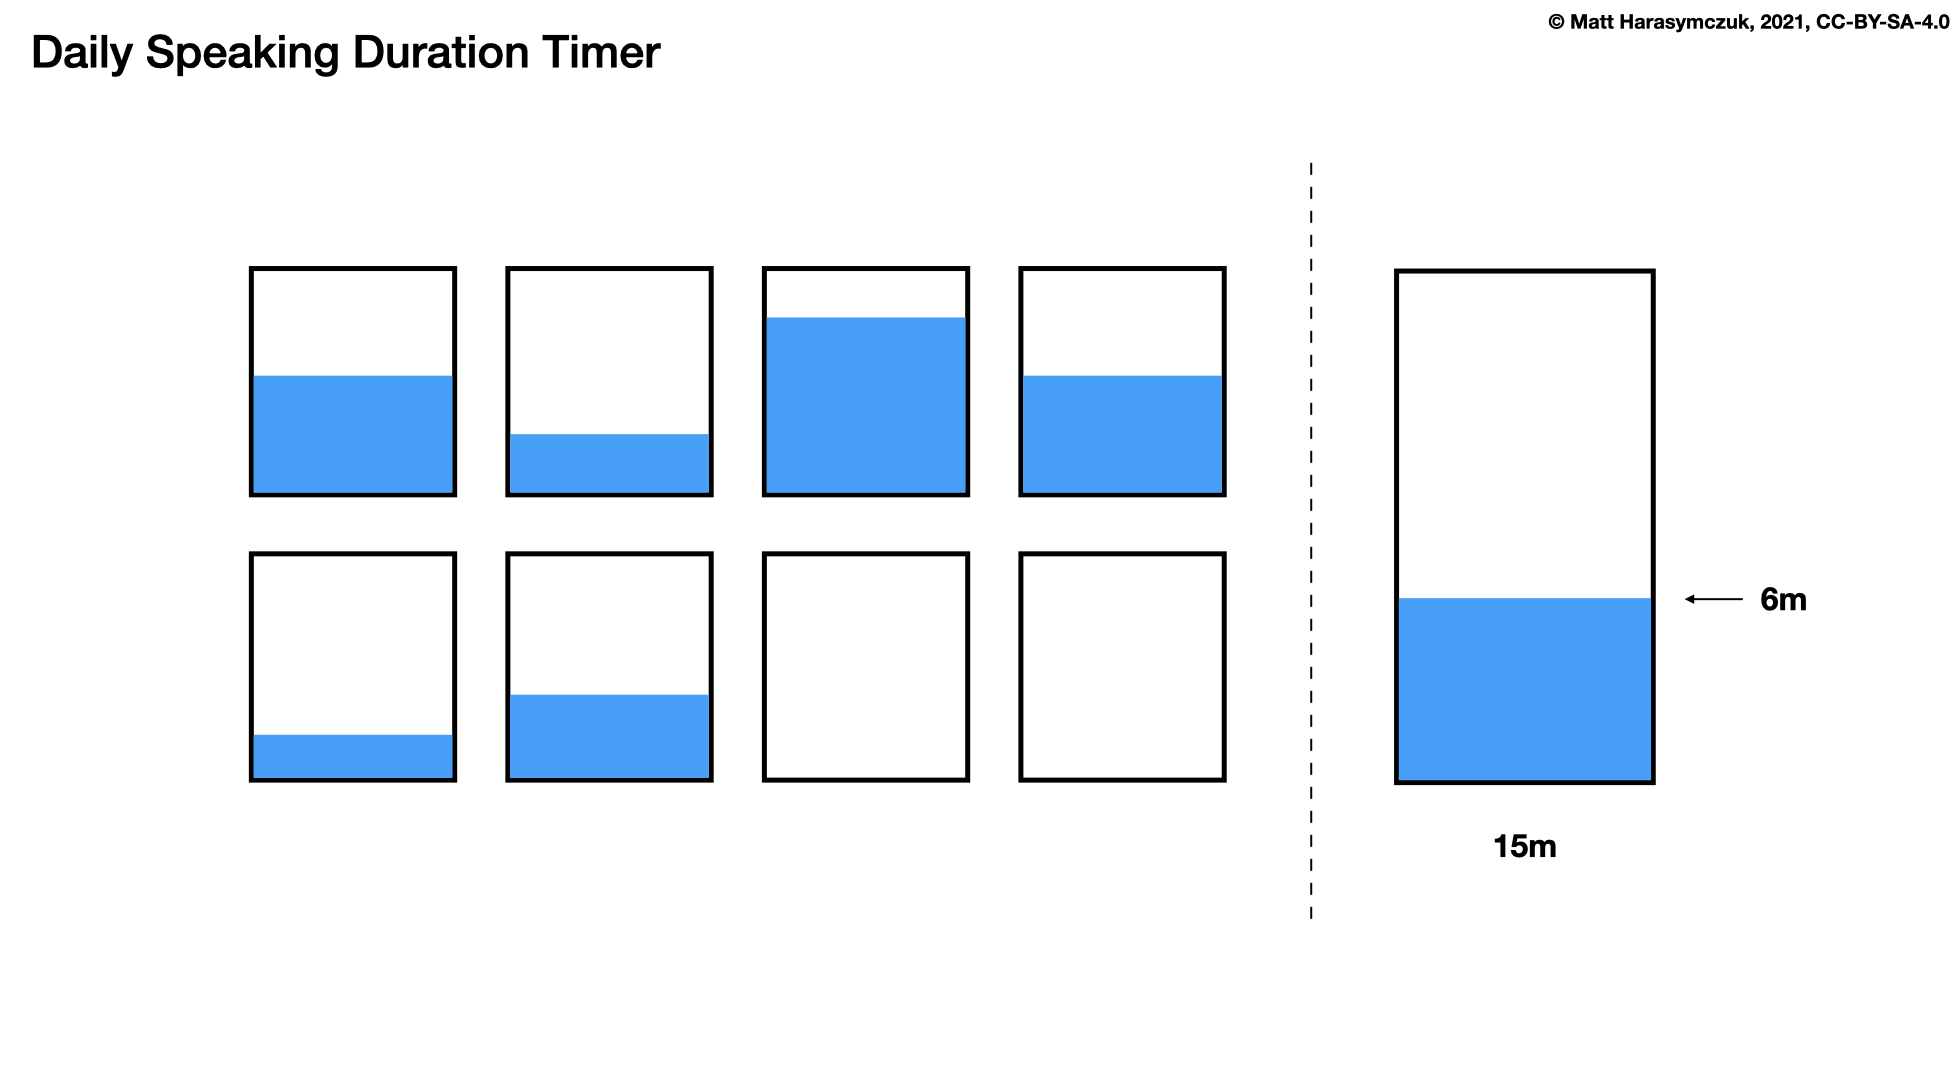 ../../_images/agility-scrum-daily-timer.png